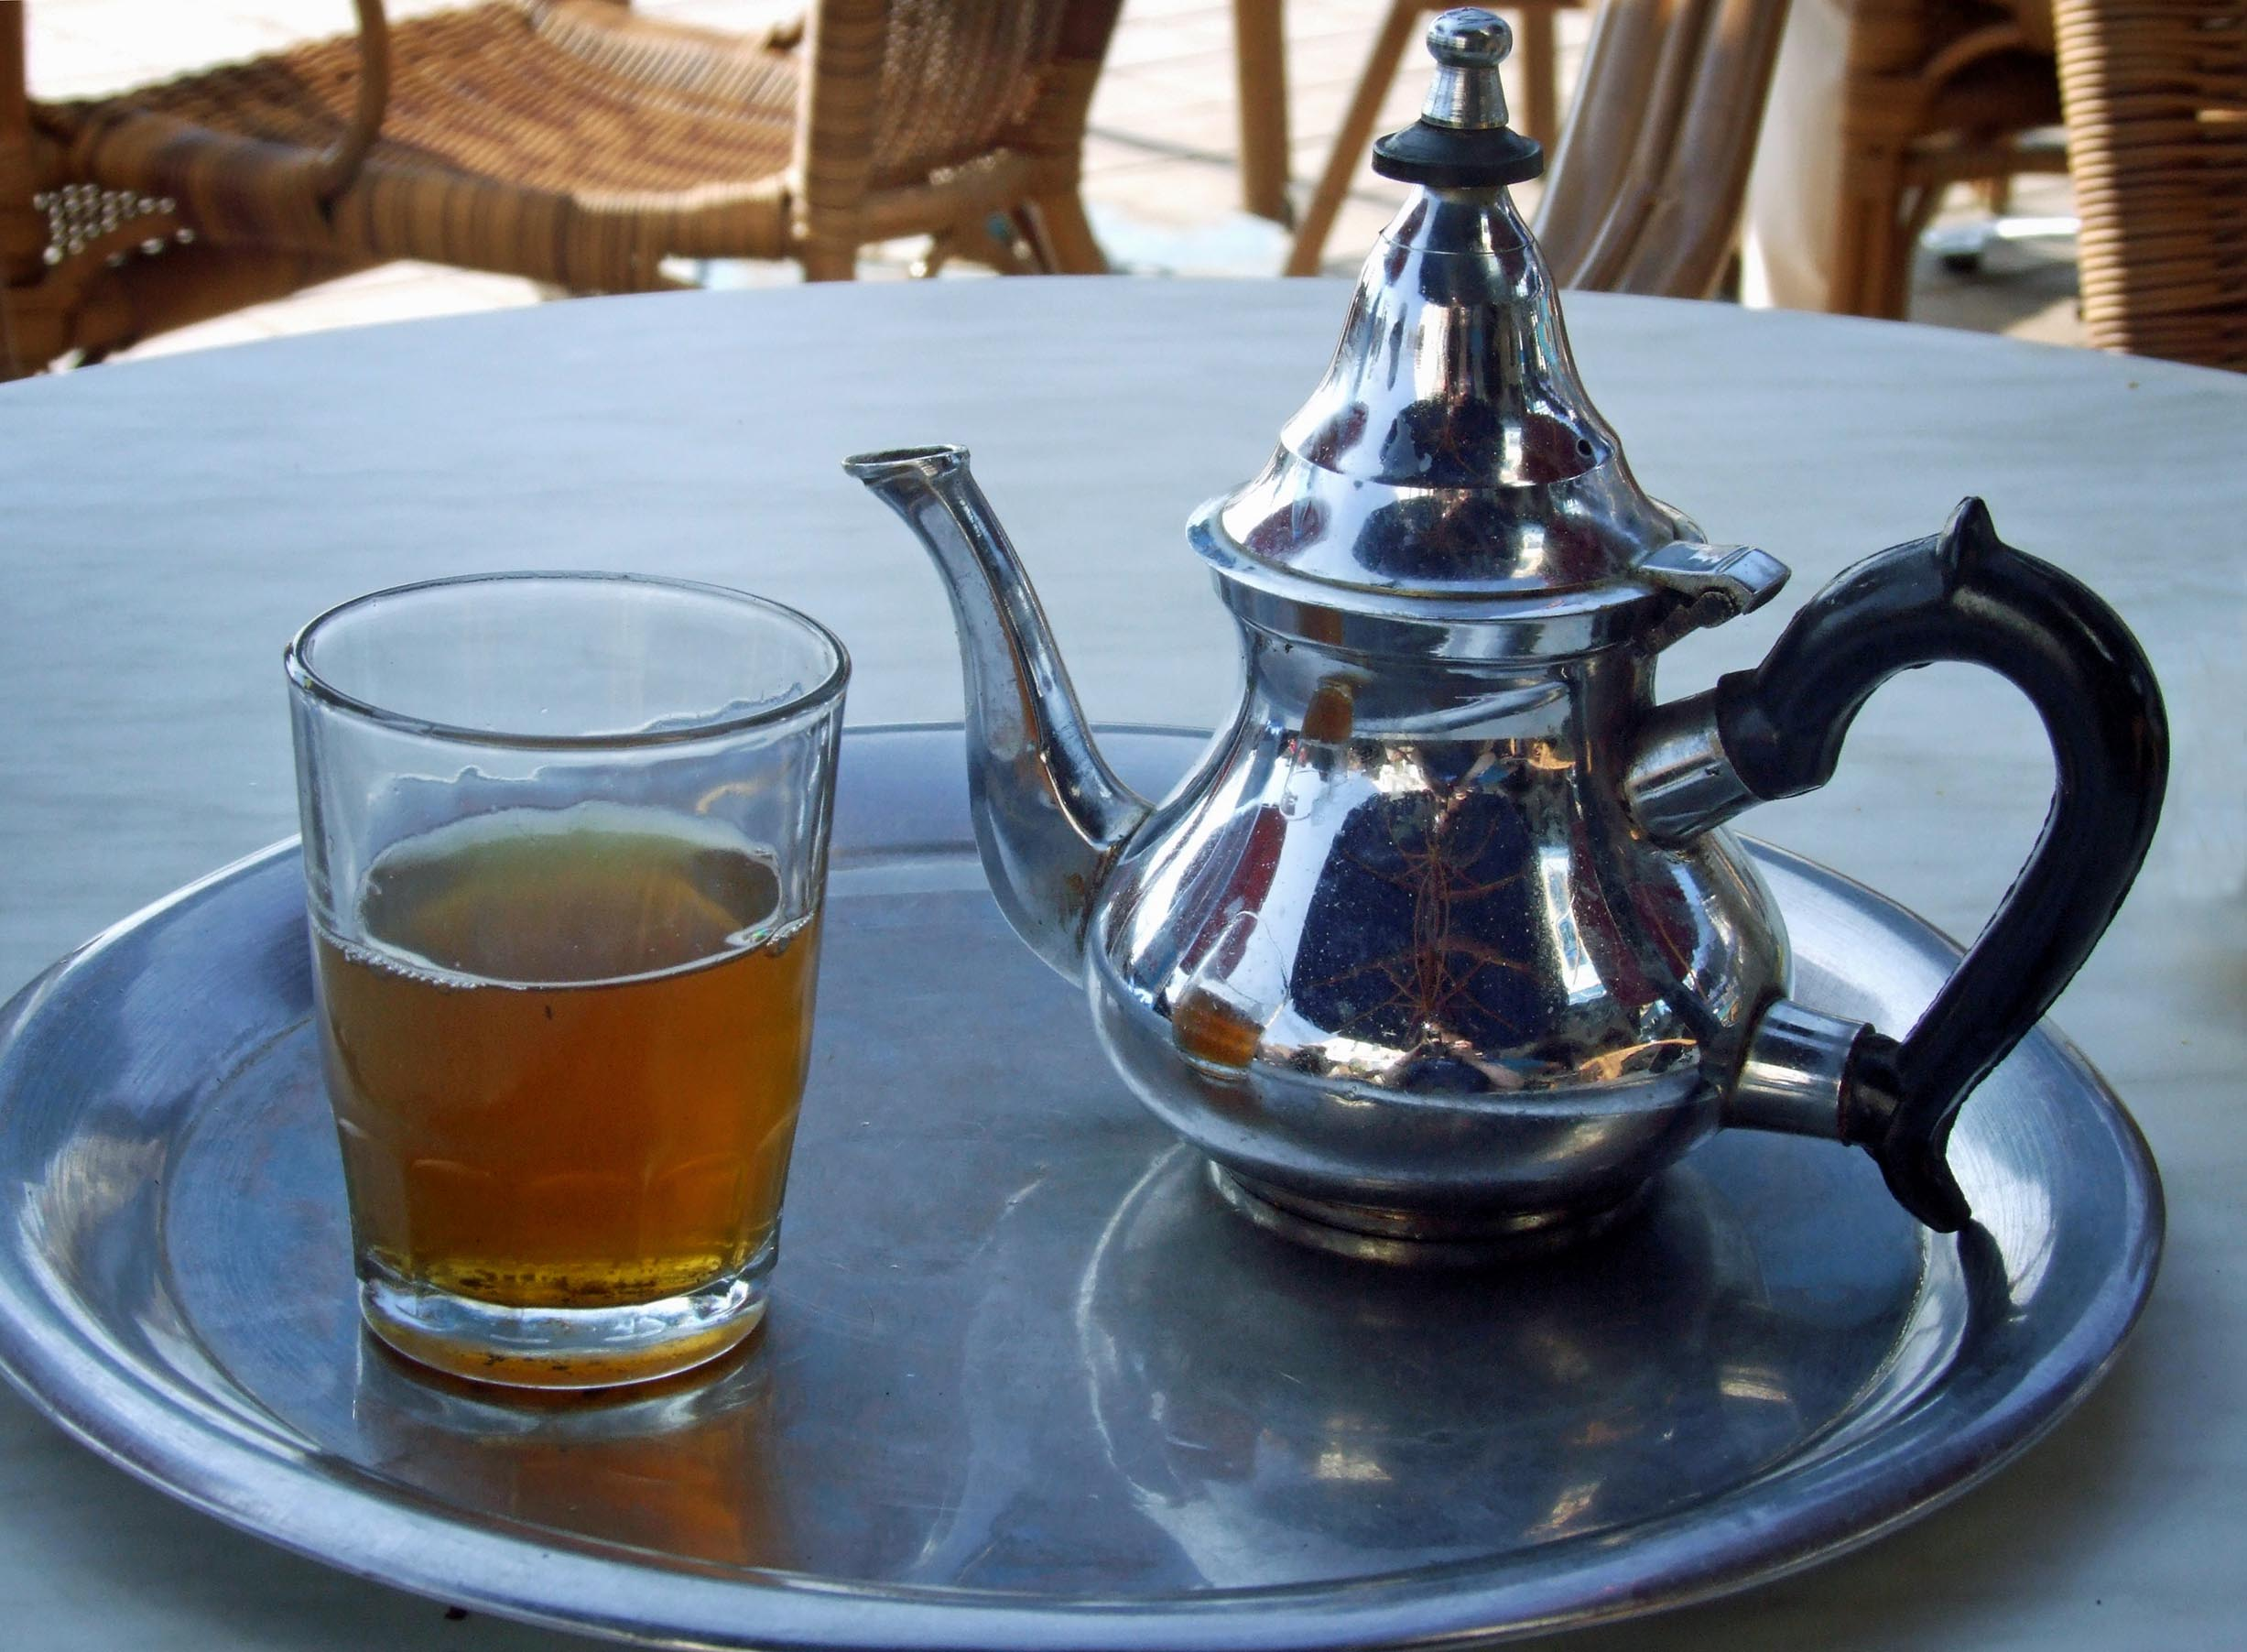 Tray with glass of tea and metal teapot